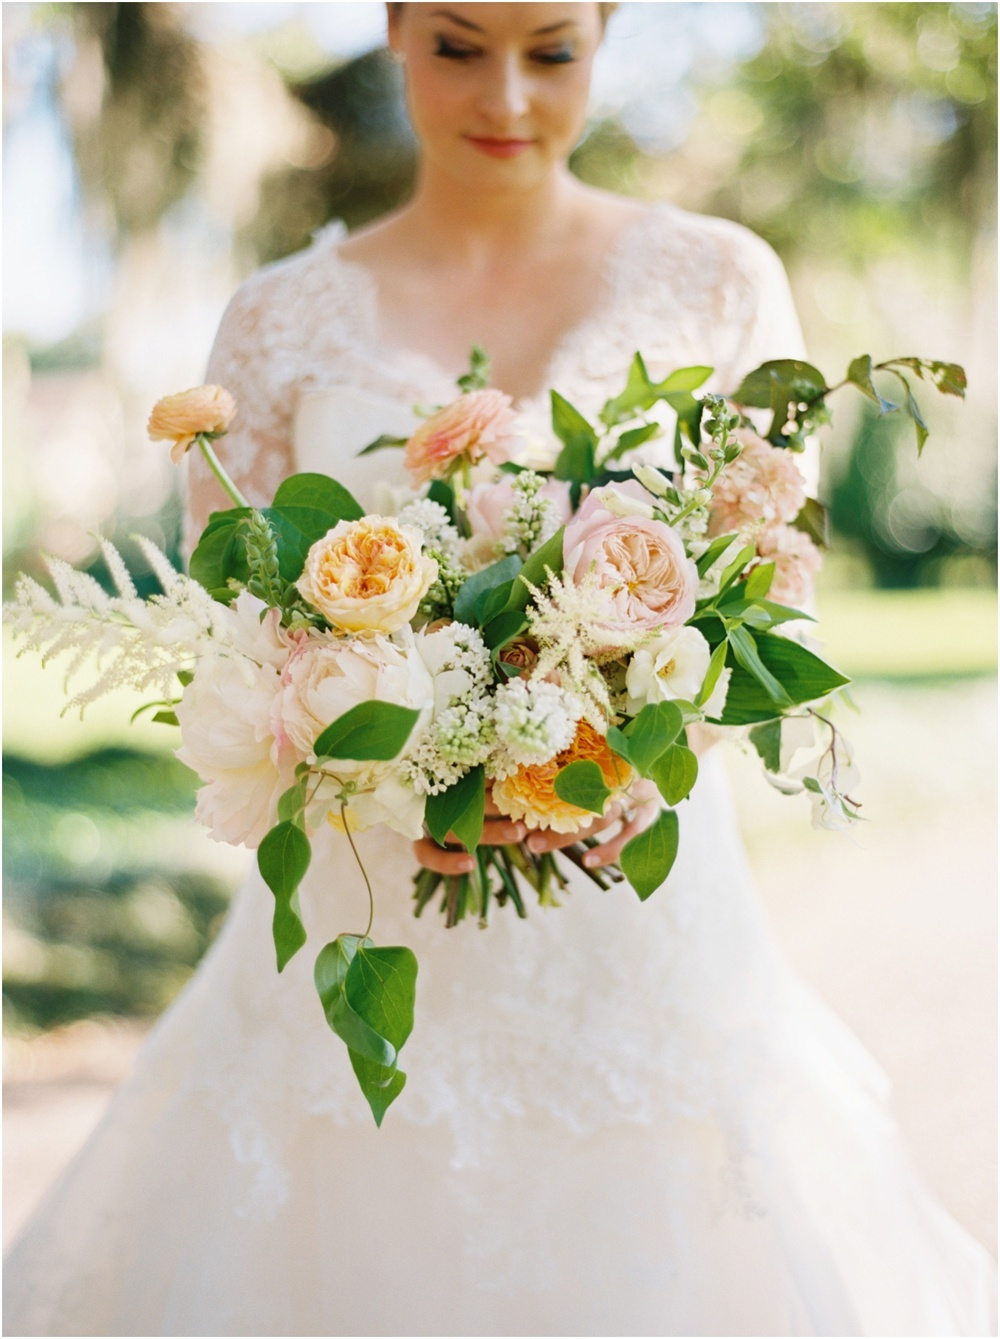 Mobile Country Club Wedding - Kristin Sweeting Photography, Holly Carlisle Florals